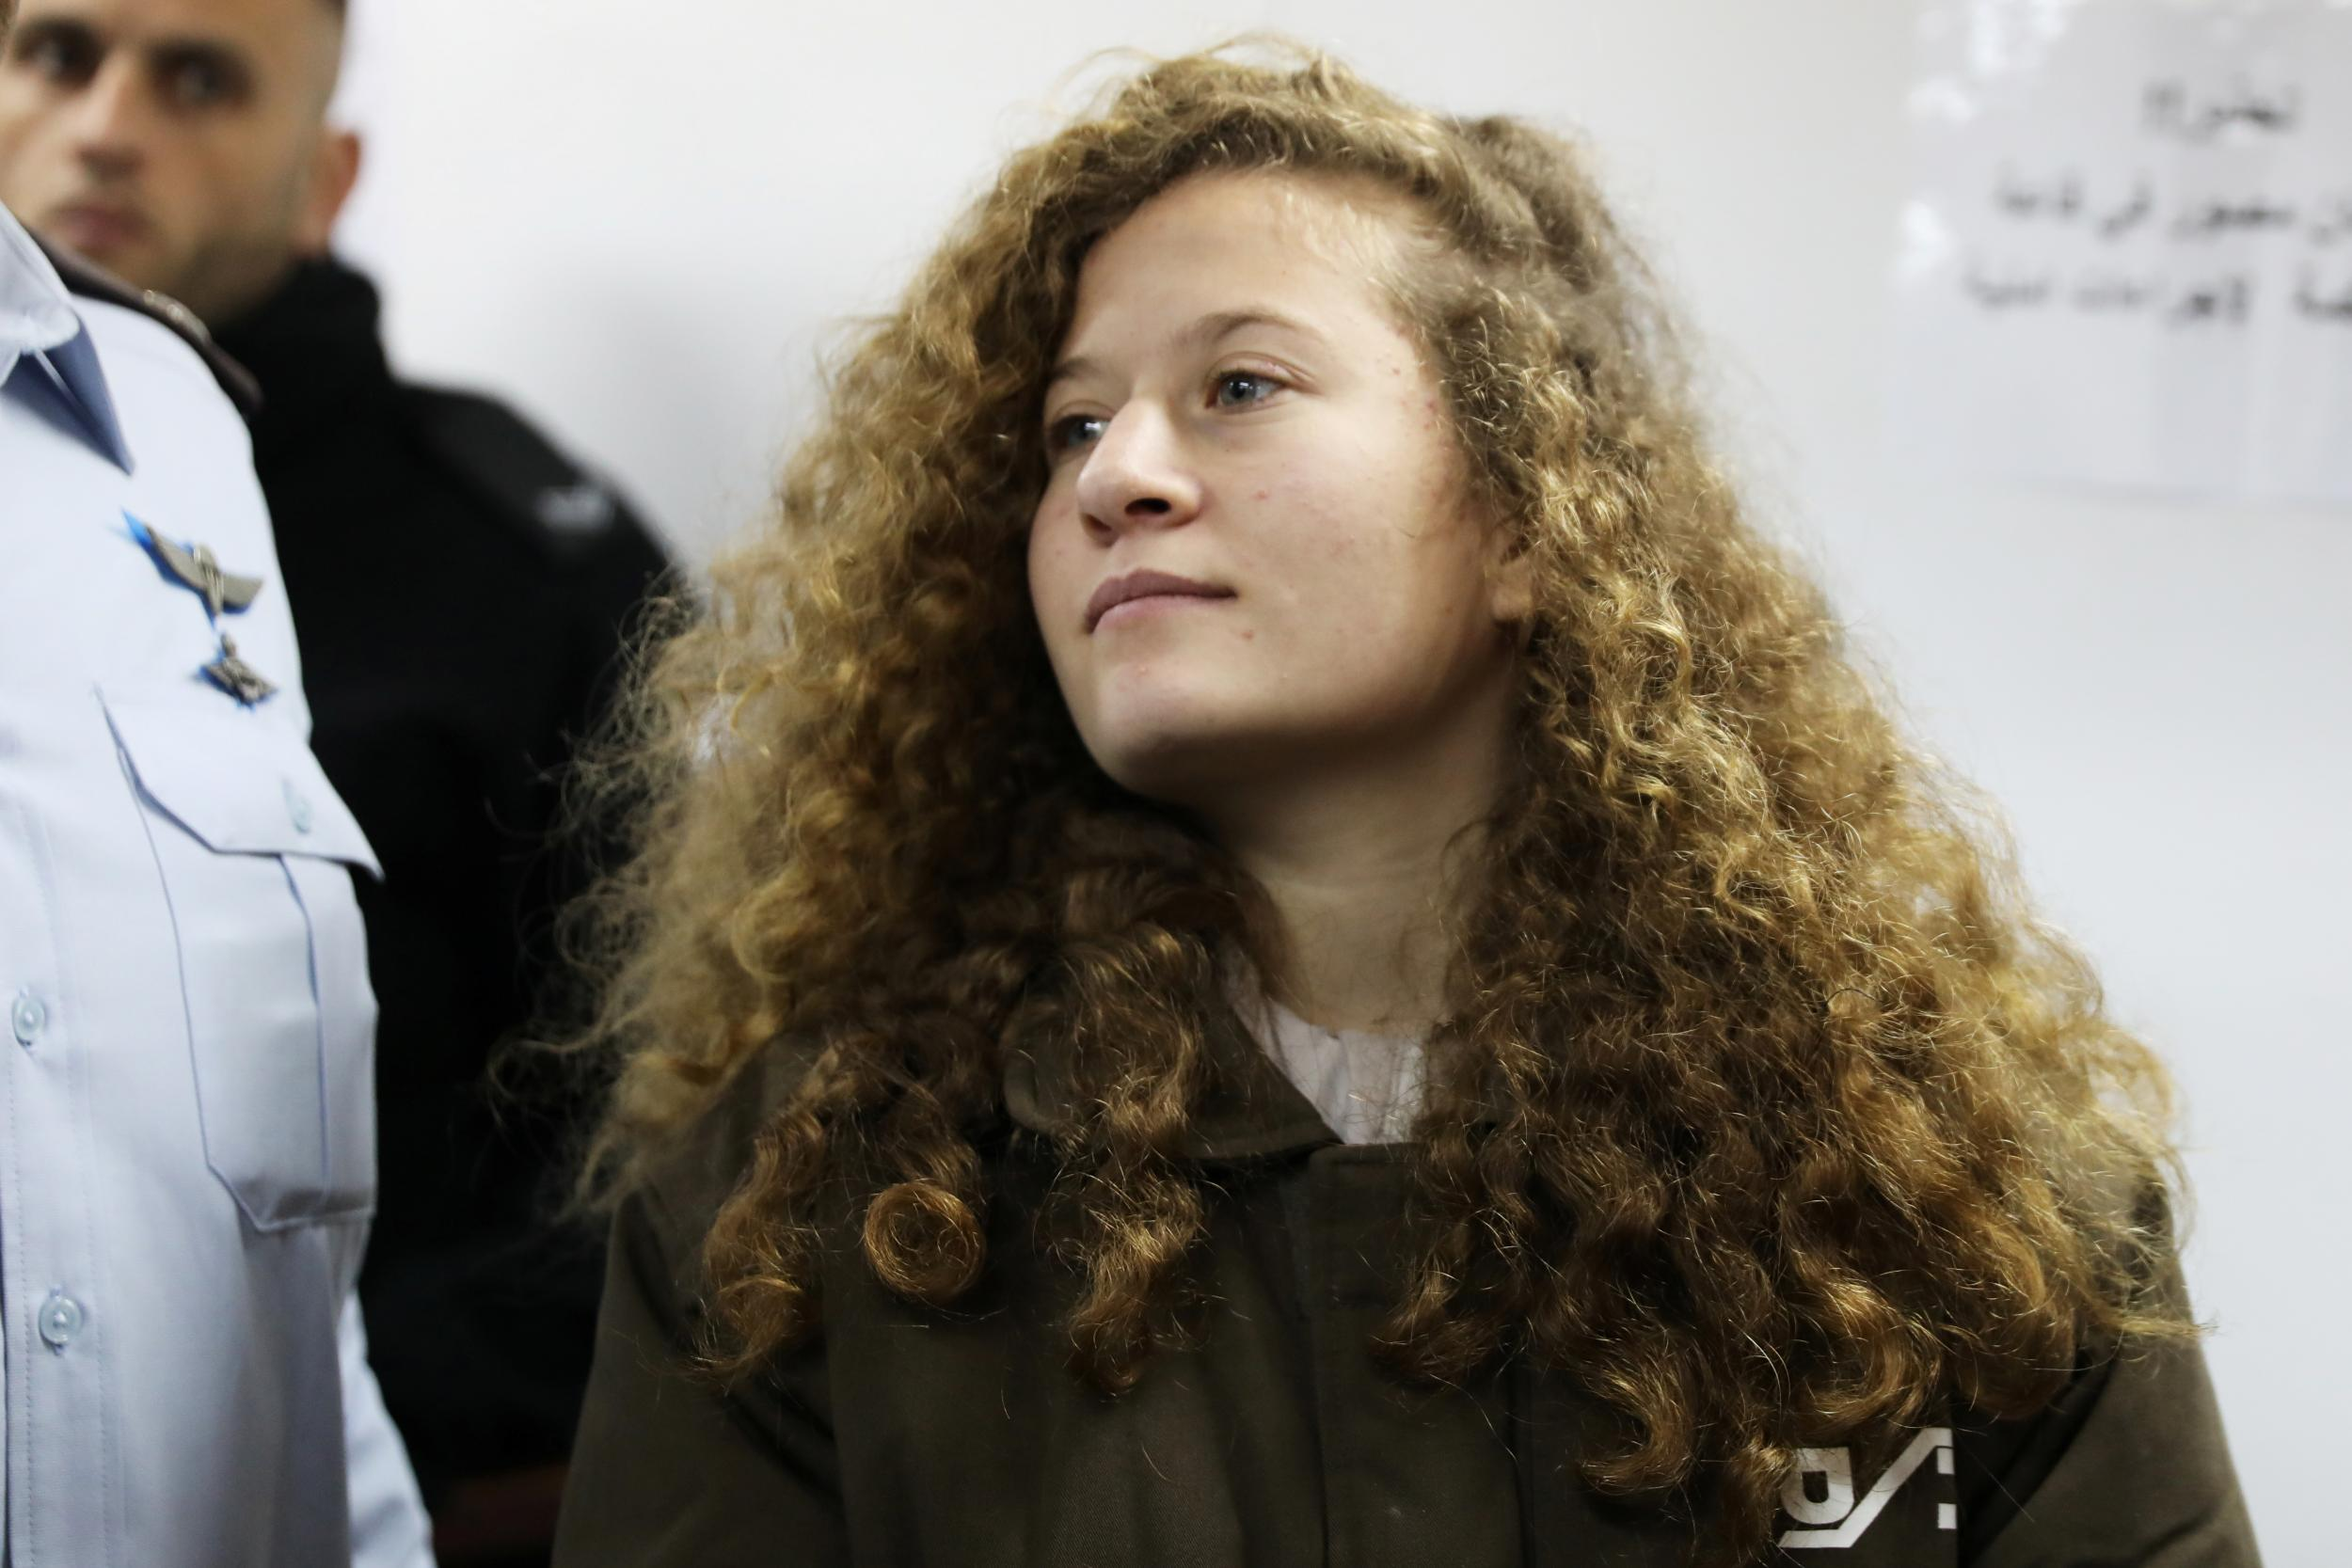 Ahed Tamimi latest: Israeli court adjourns trial of Palestinian teenager after closed hearing